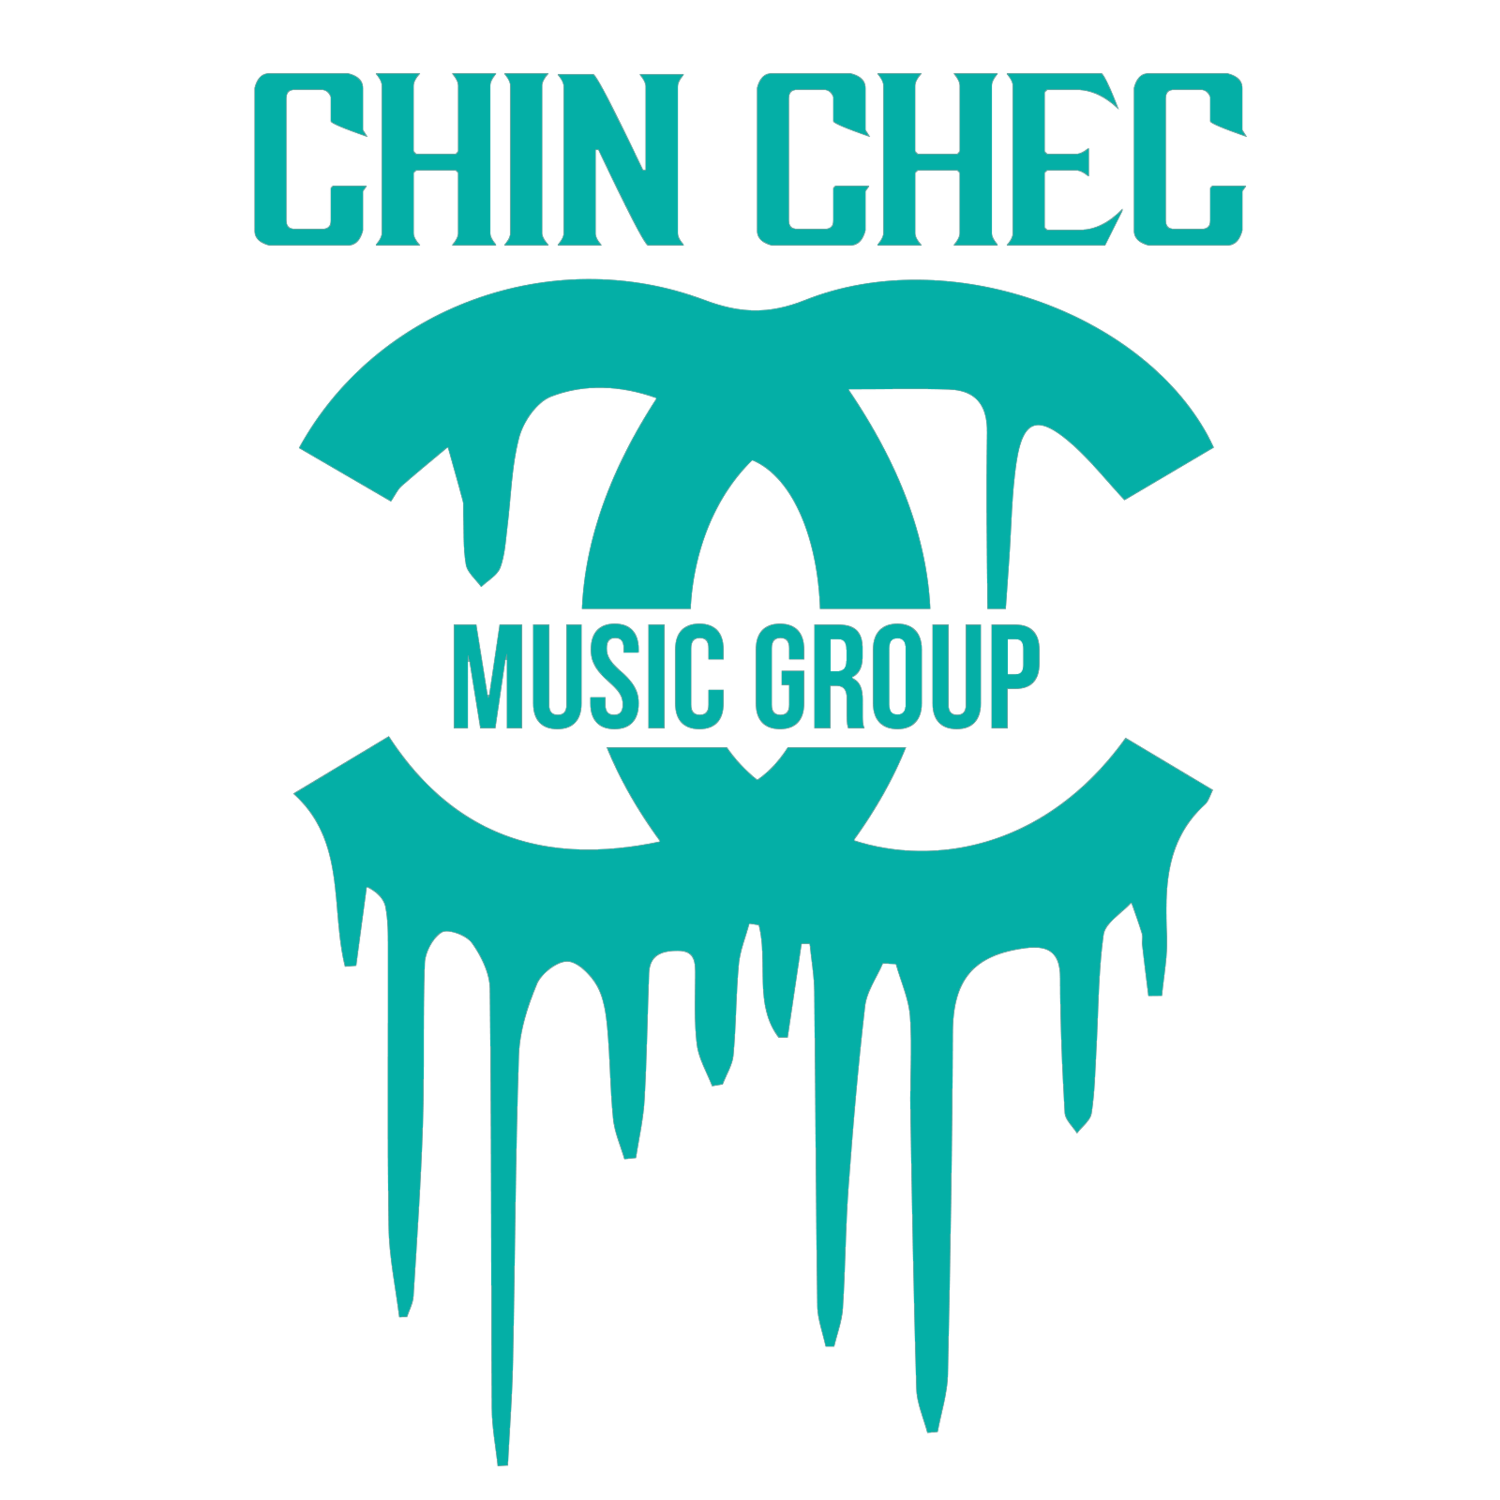 Chin Chec Music Group